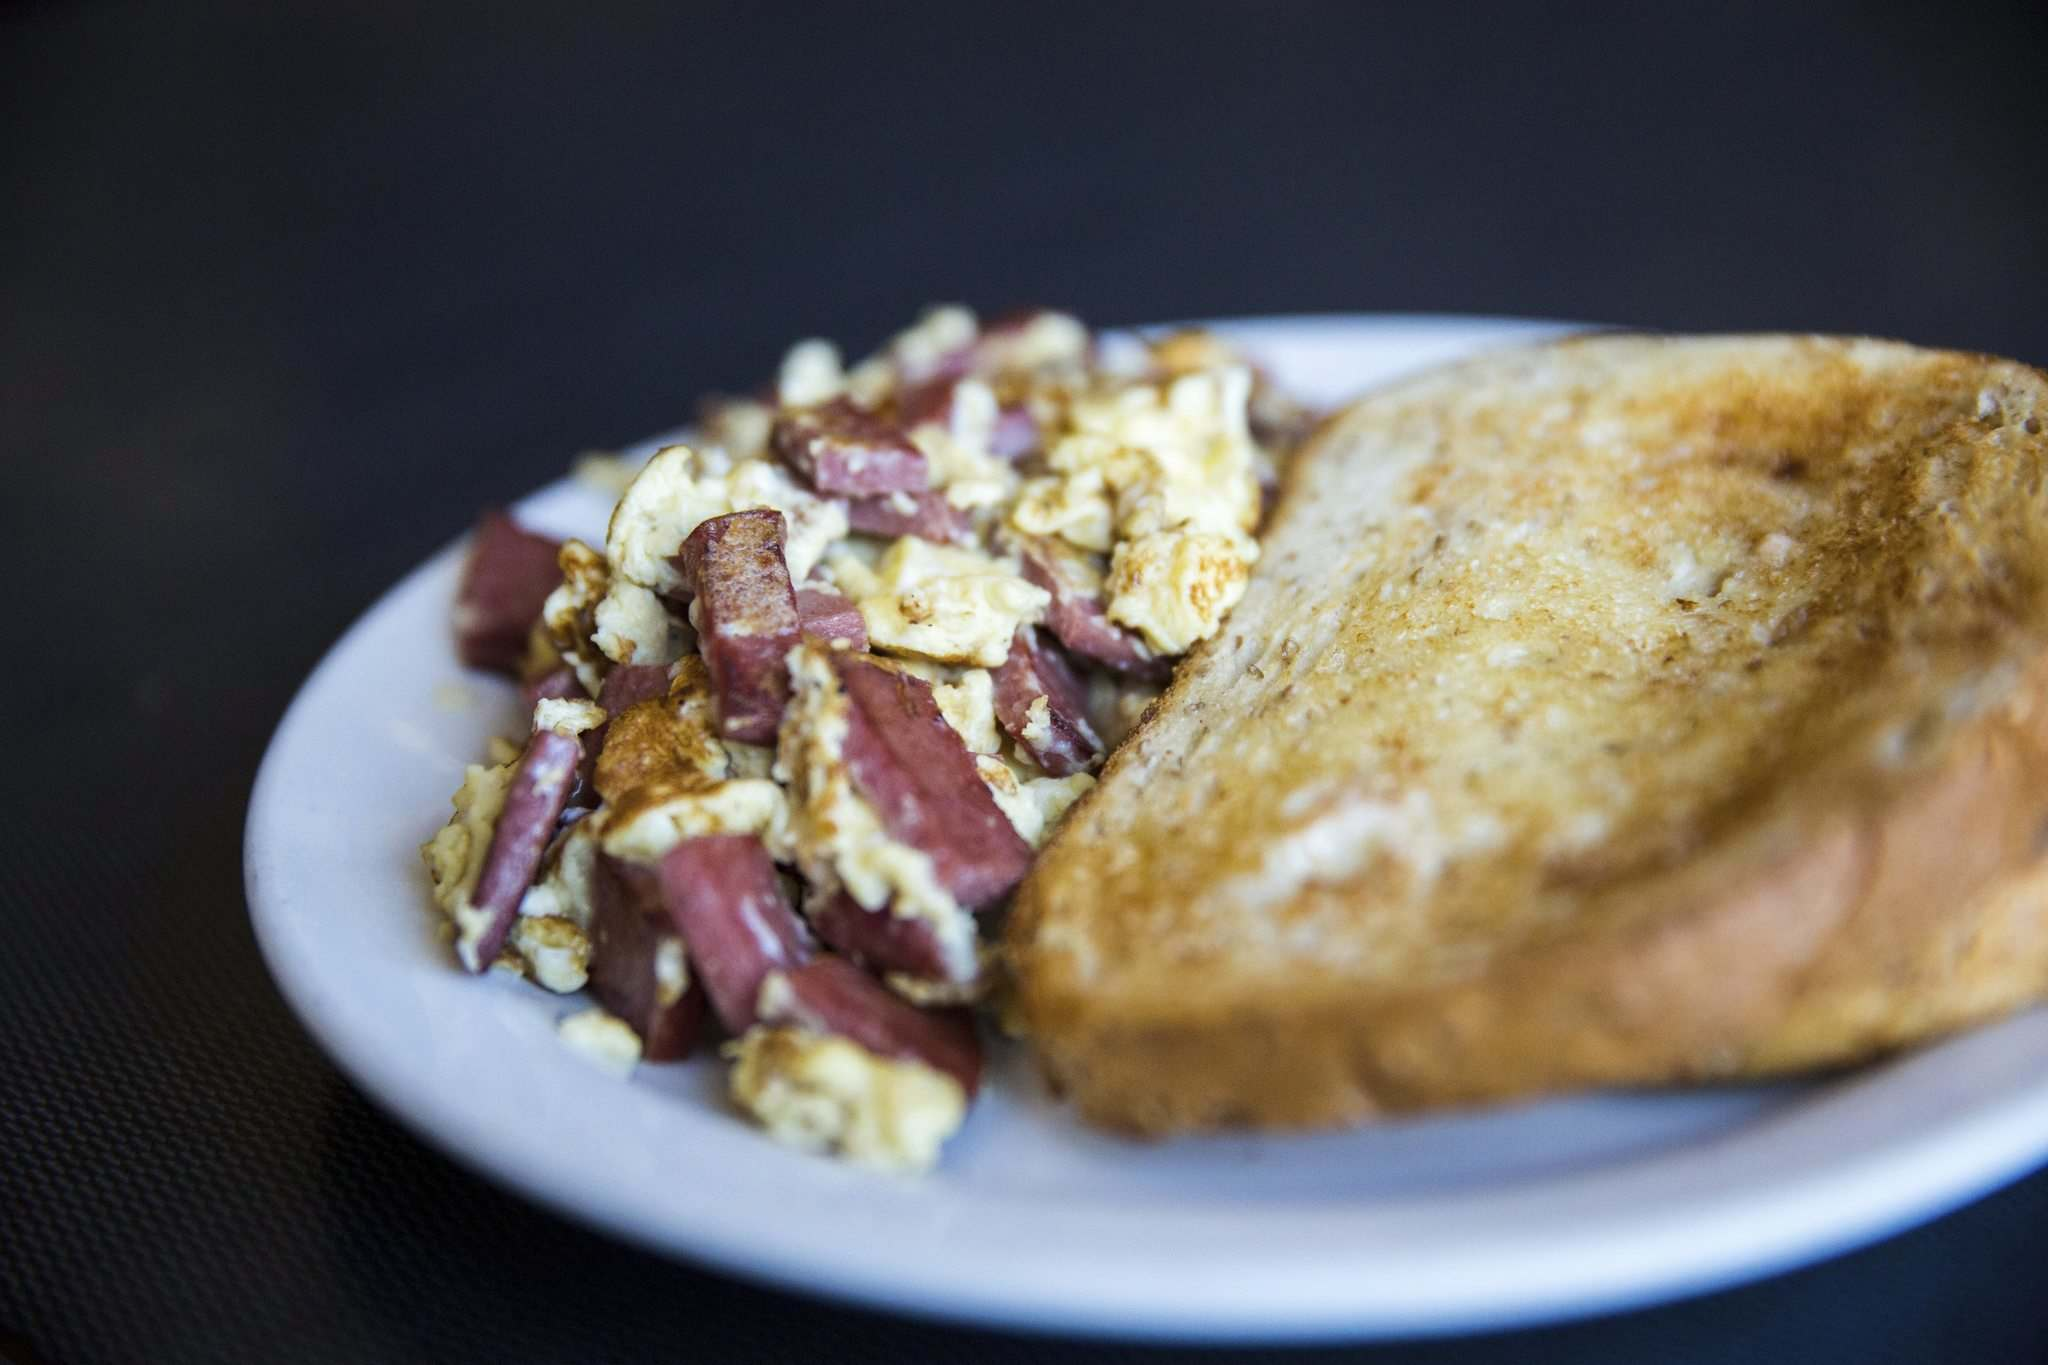 The salami and eggs features short-order scrambled eggs jumbled together with Smith's all-beef salami and served with a big mound of spuds and rye toast. (Mikaela MacKenzie / Winnipeg Free Press)